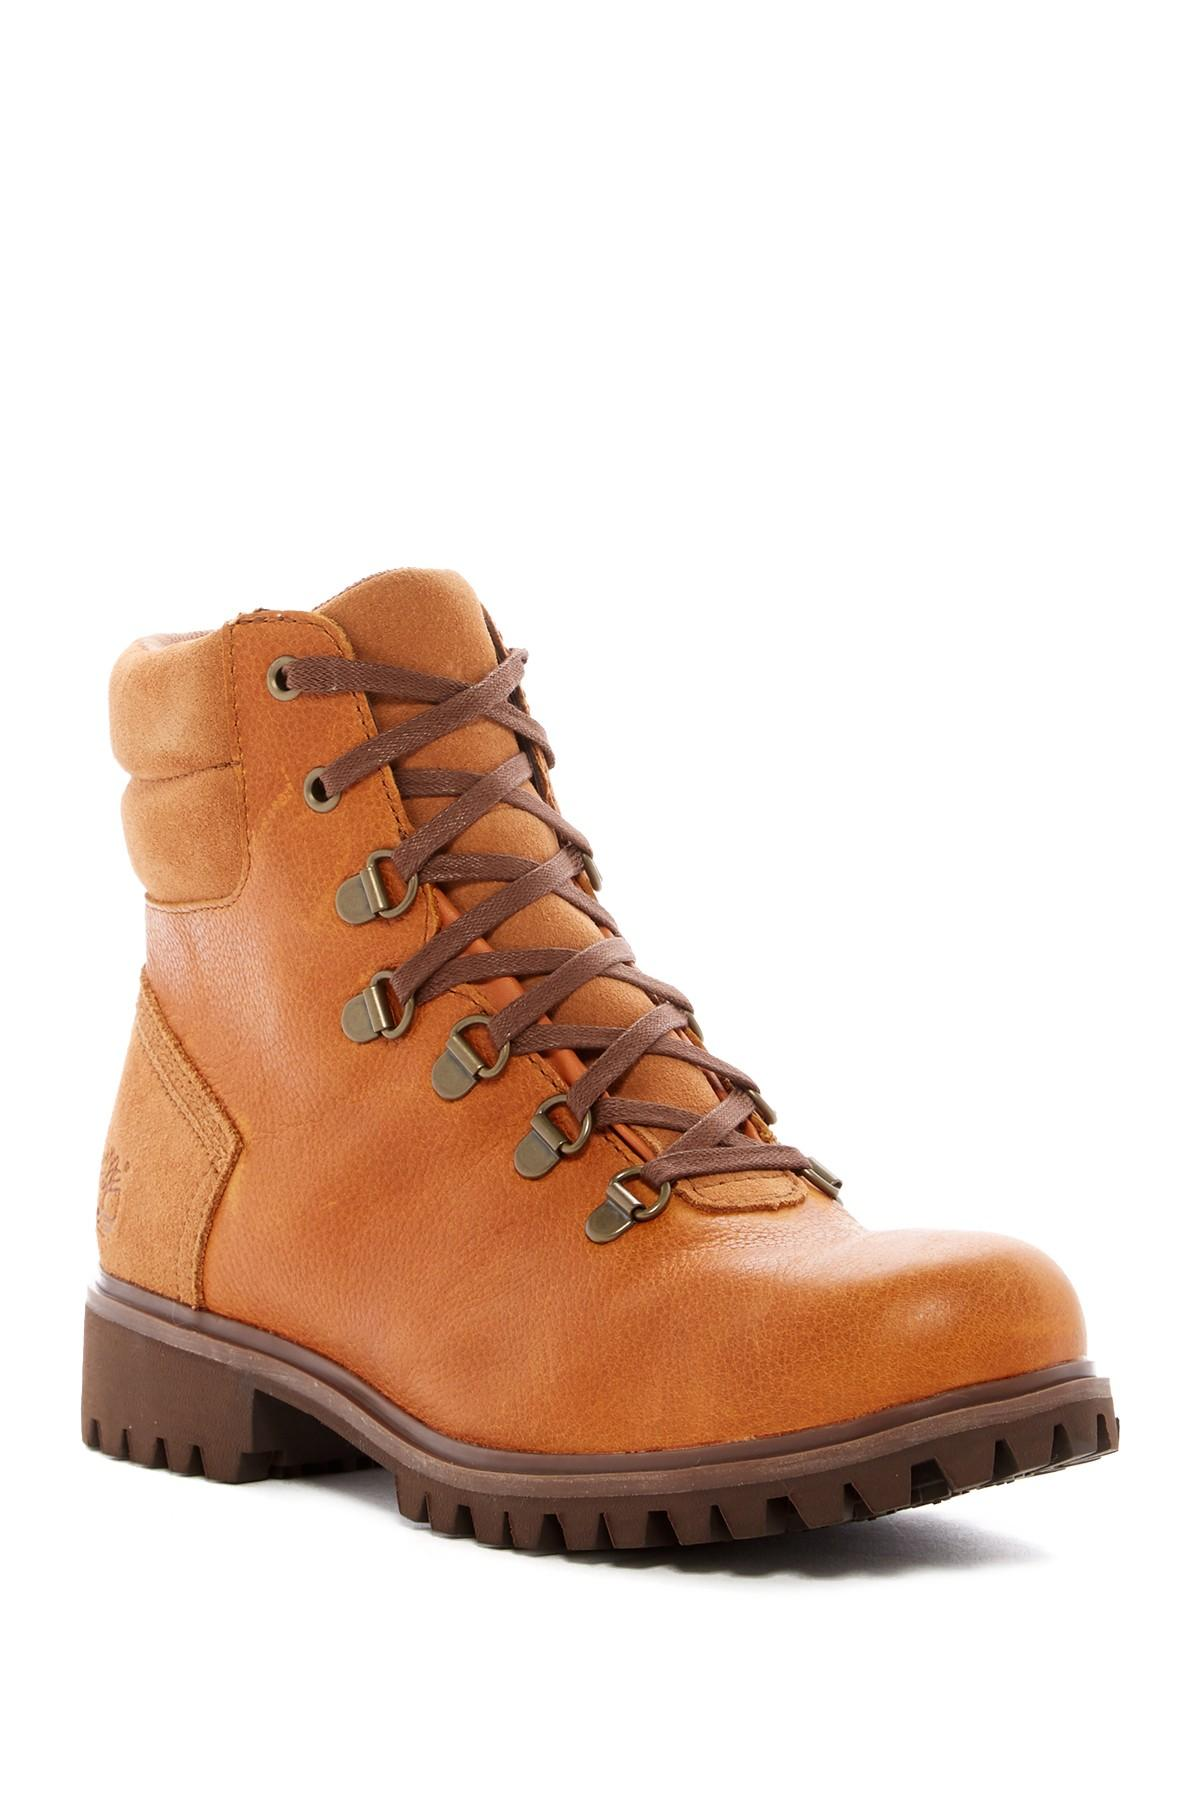 Lyst Timberland Wheelwright Waterproof Hiking Boot In Brown For Men